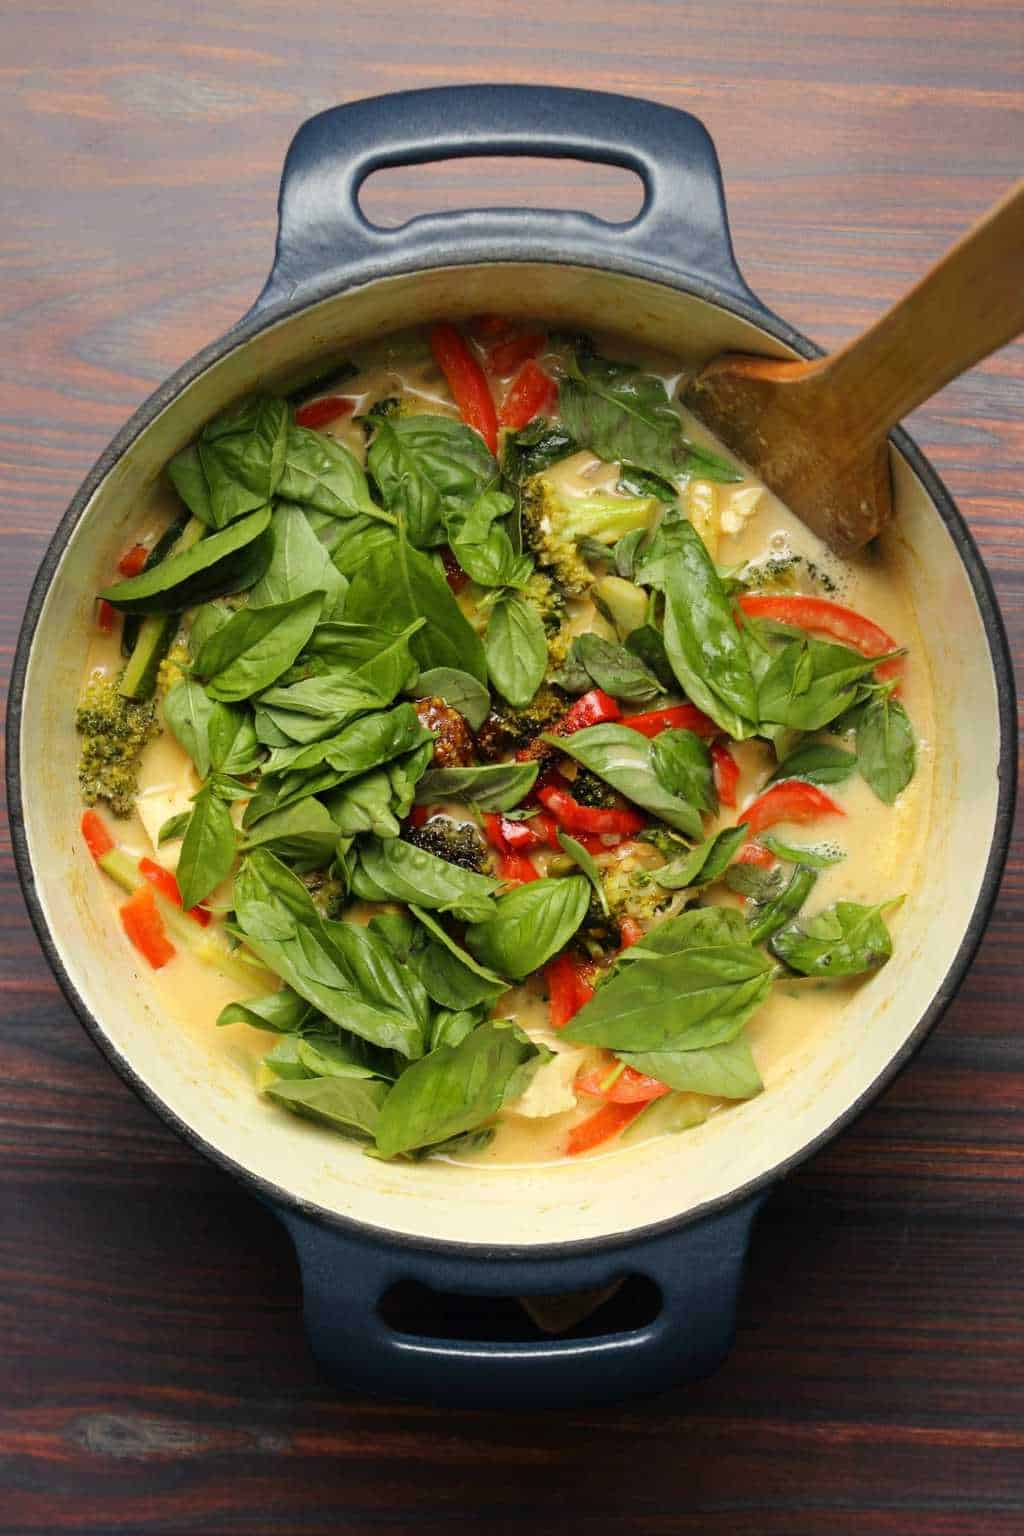 Vegan green curry in a blue cast iron pot with a wooden spoon.